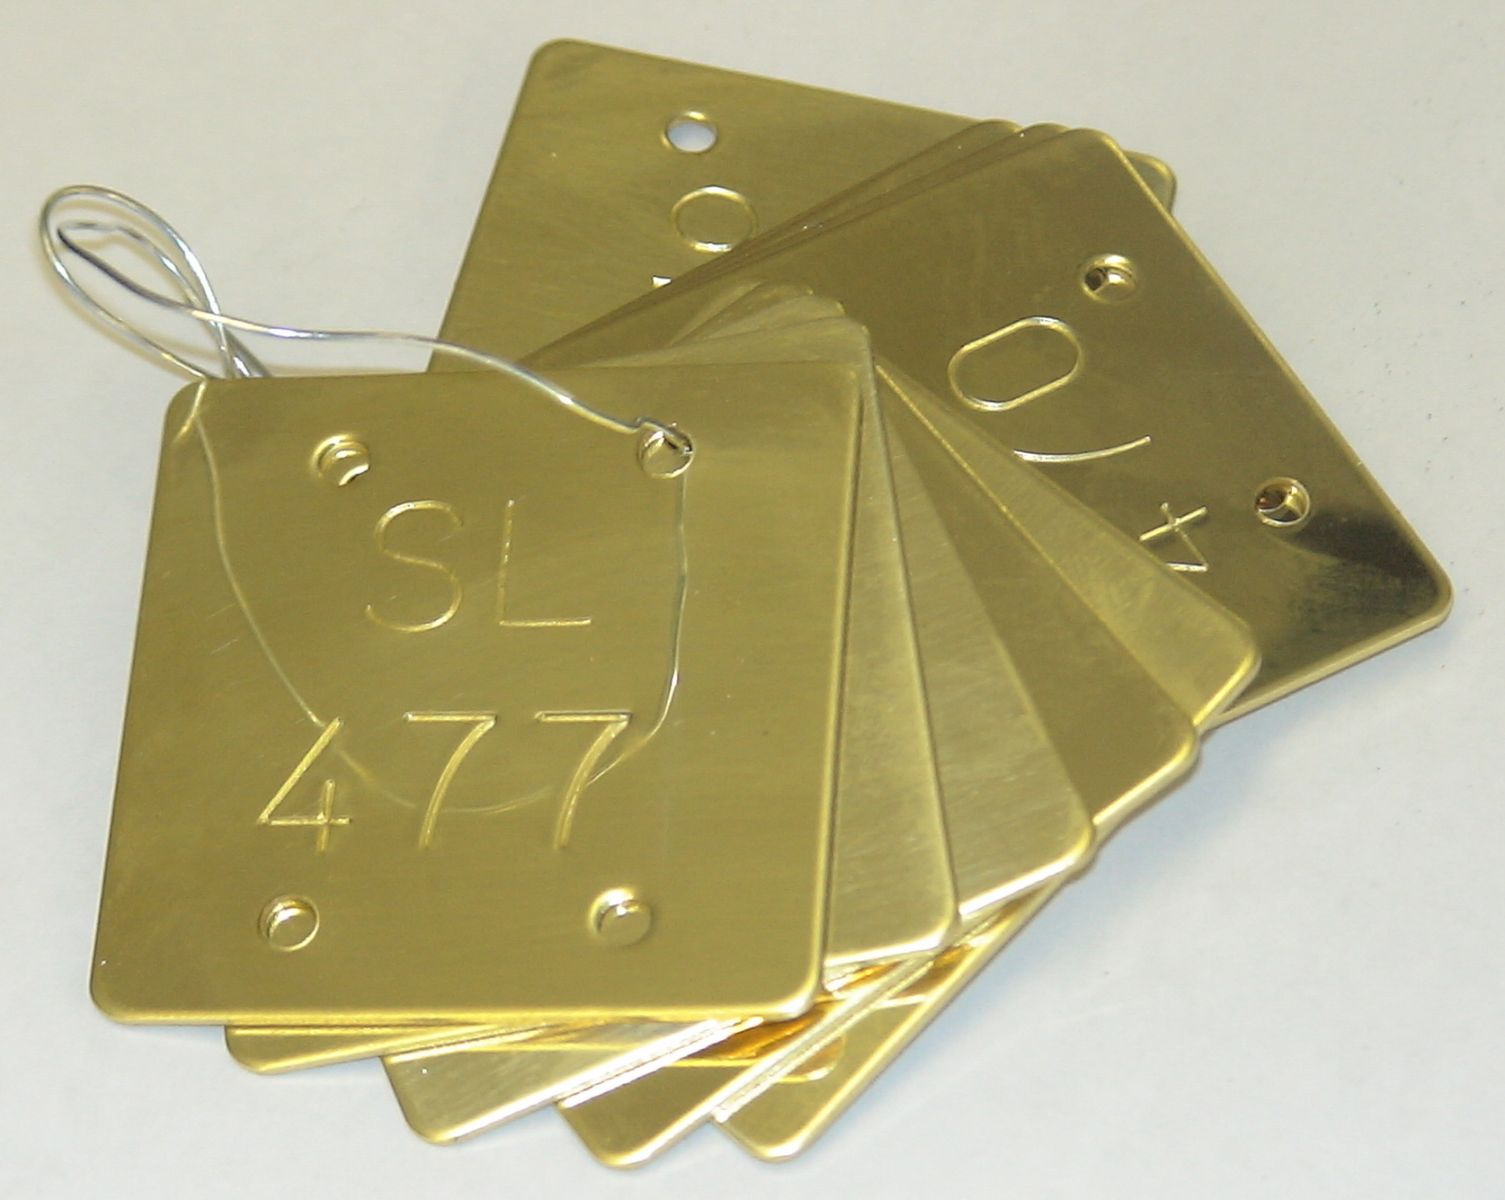 stamped brass valve tag-no infill radiused corners - ideal for valve tags -and asset number labelling